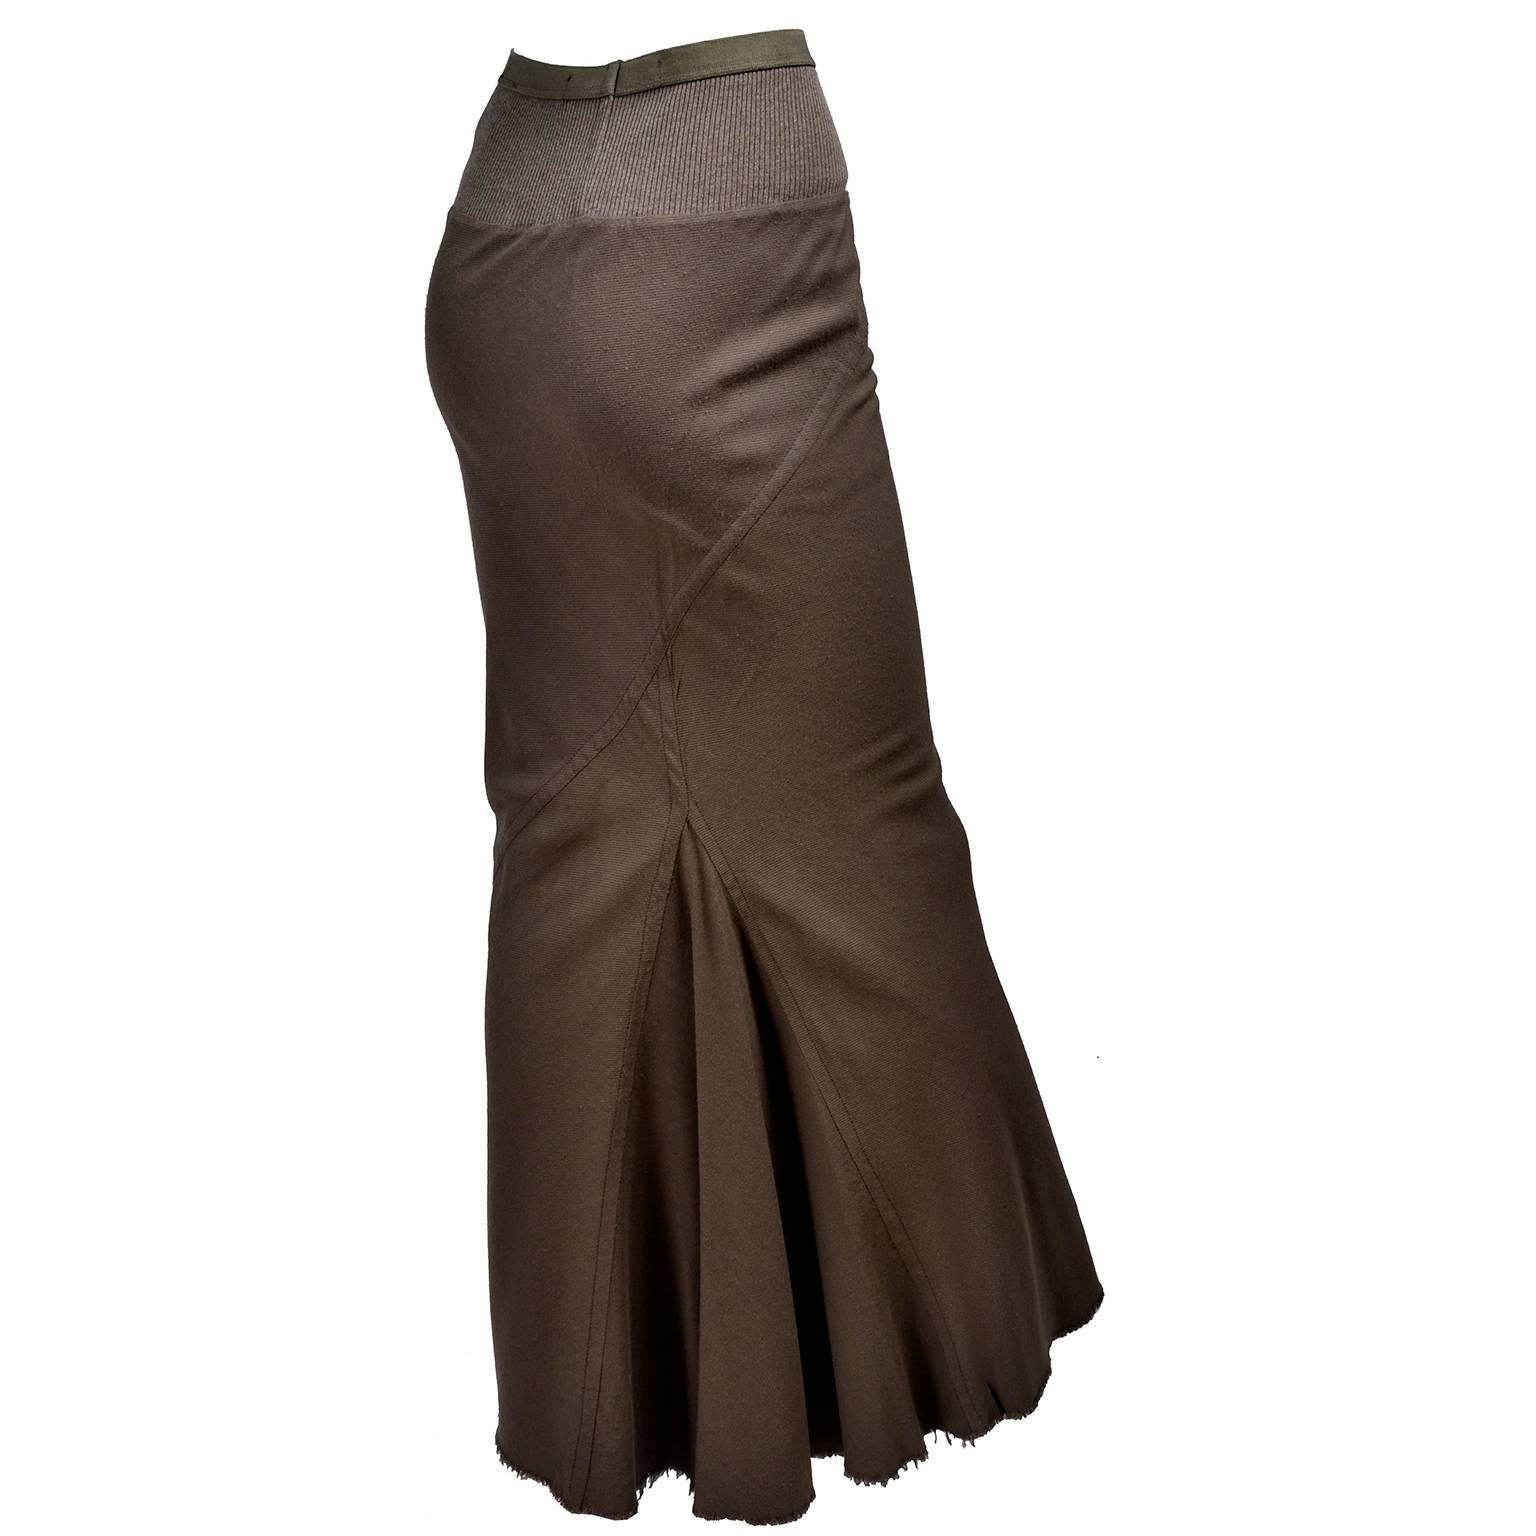 This is a body-con Rick Owens distressed maxi skirt from the Fall Winter  2008